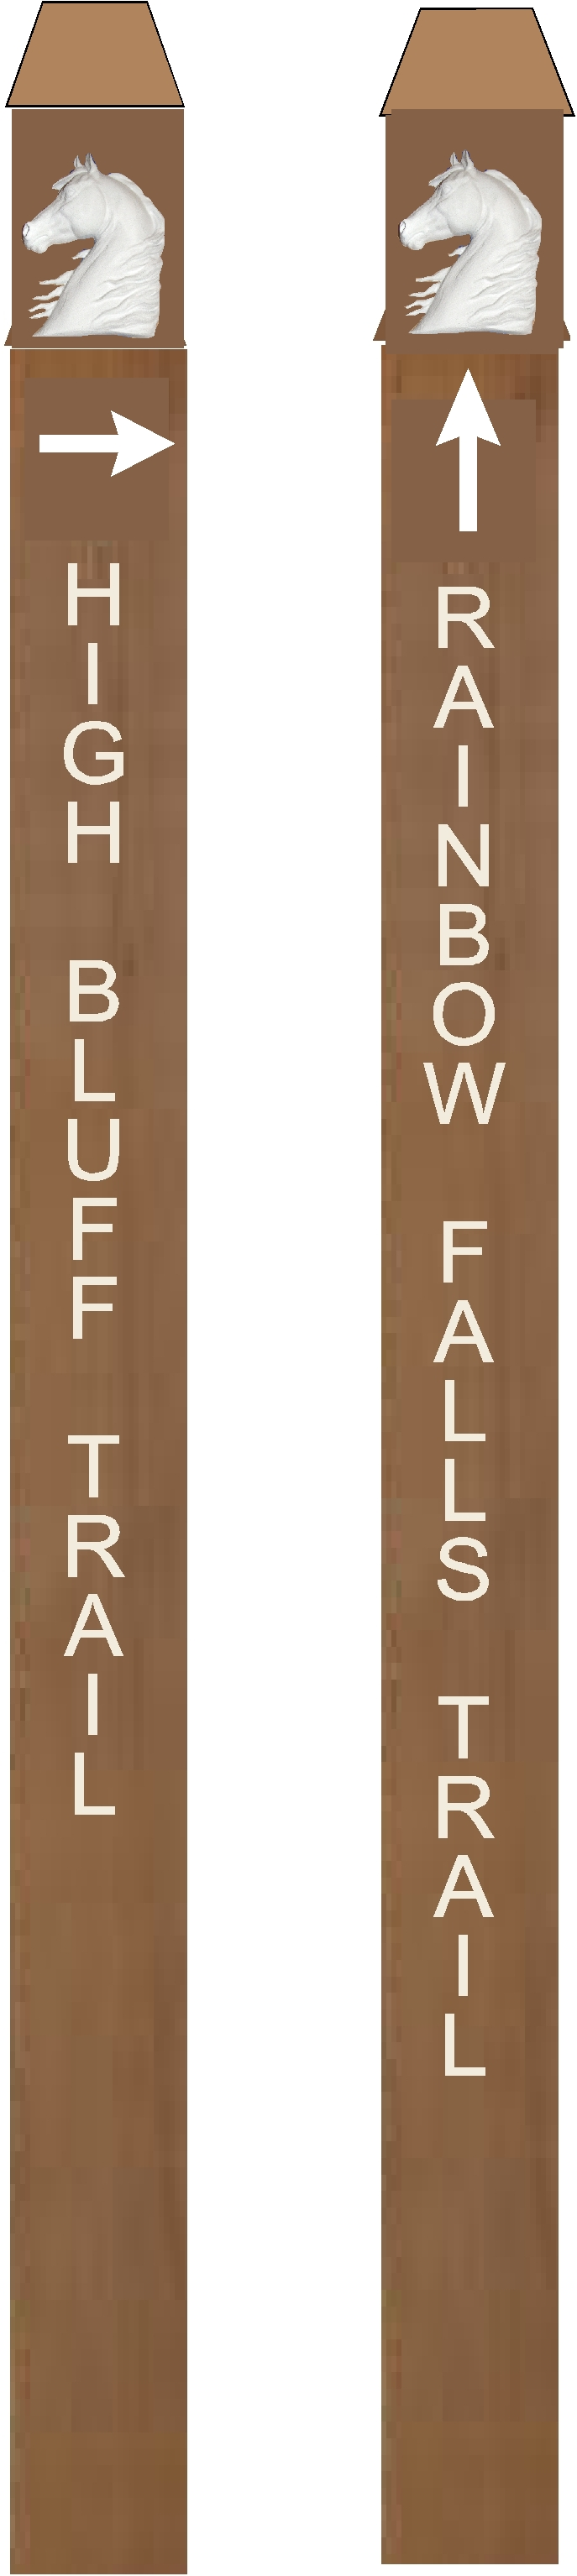 P25601 - Custom Redwood Post Equestrian Trail Markers